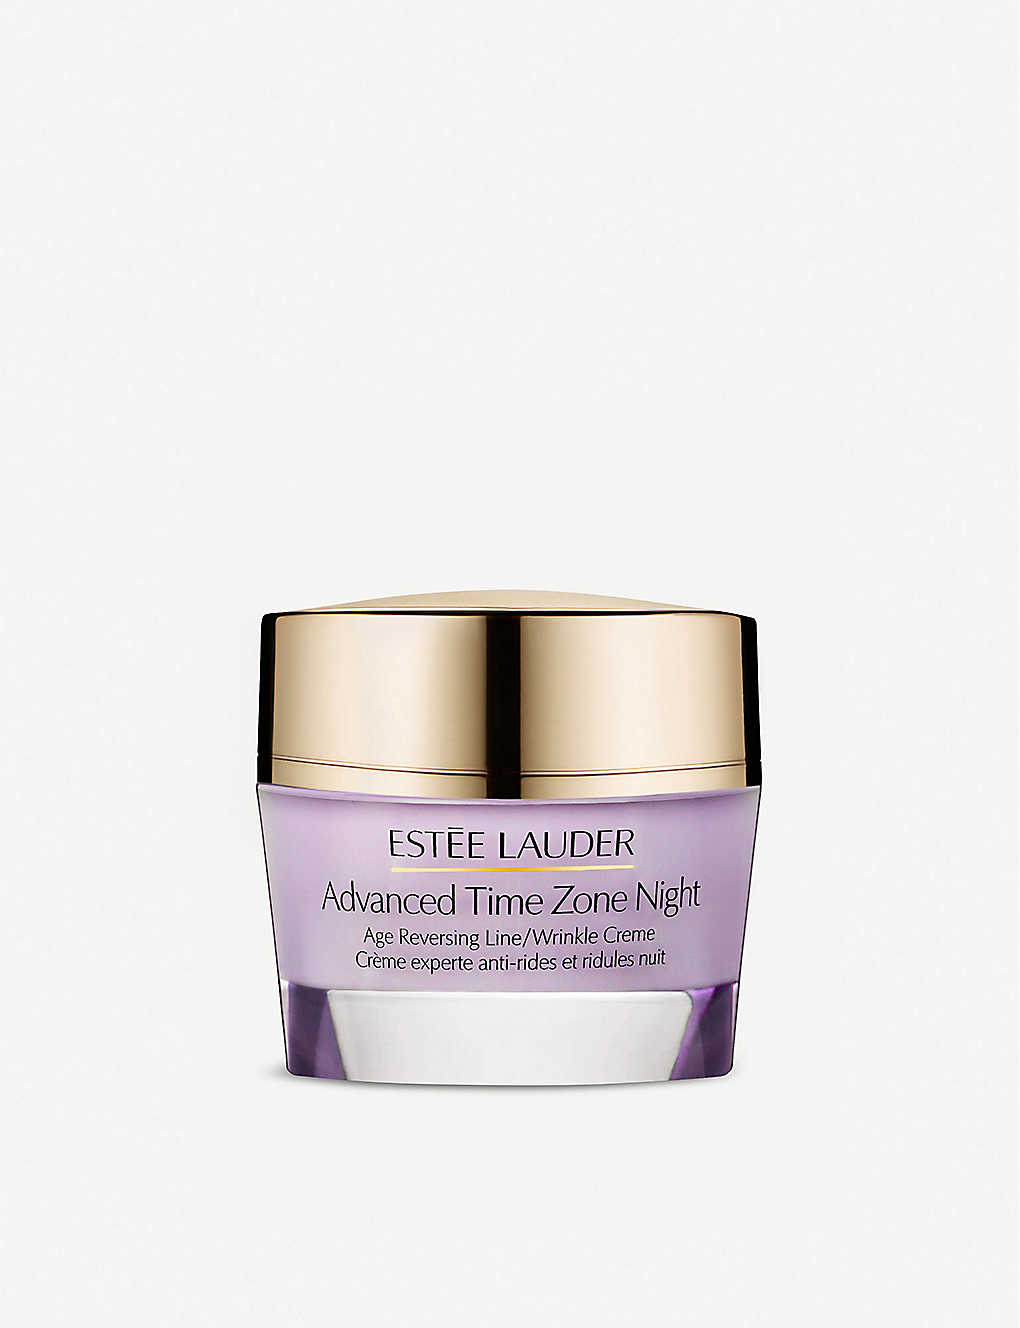 ESTEE LAUDER: Advanced Time Zone Night Age Reversing Line/Wrinkle Creme 50ml